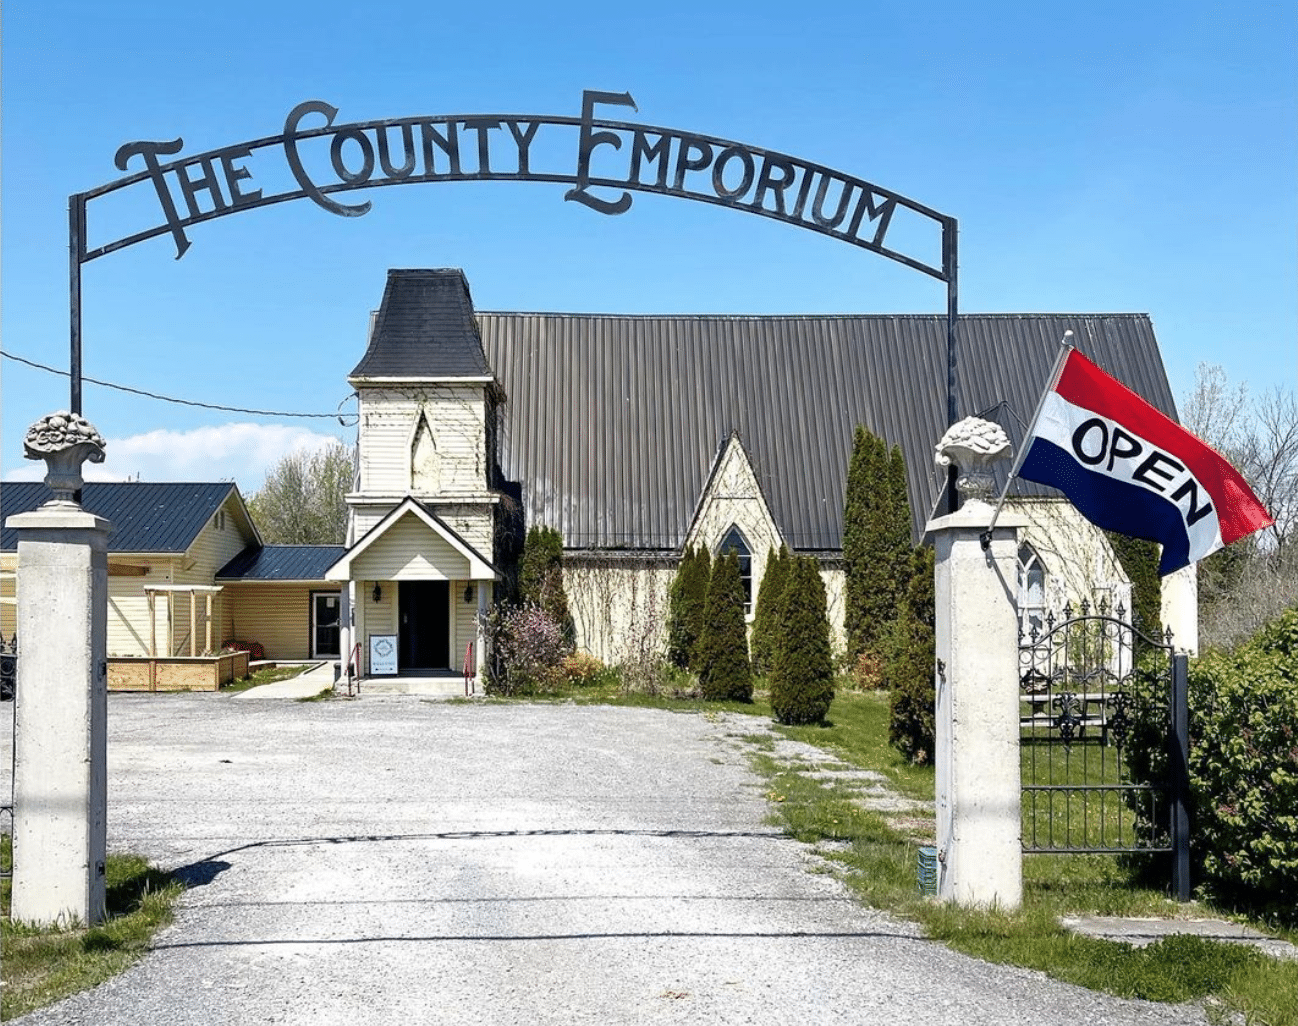 View of The County Emporium in Carrying Place, Prince Edward County